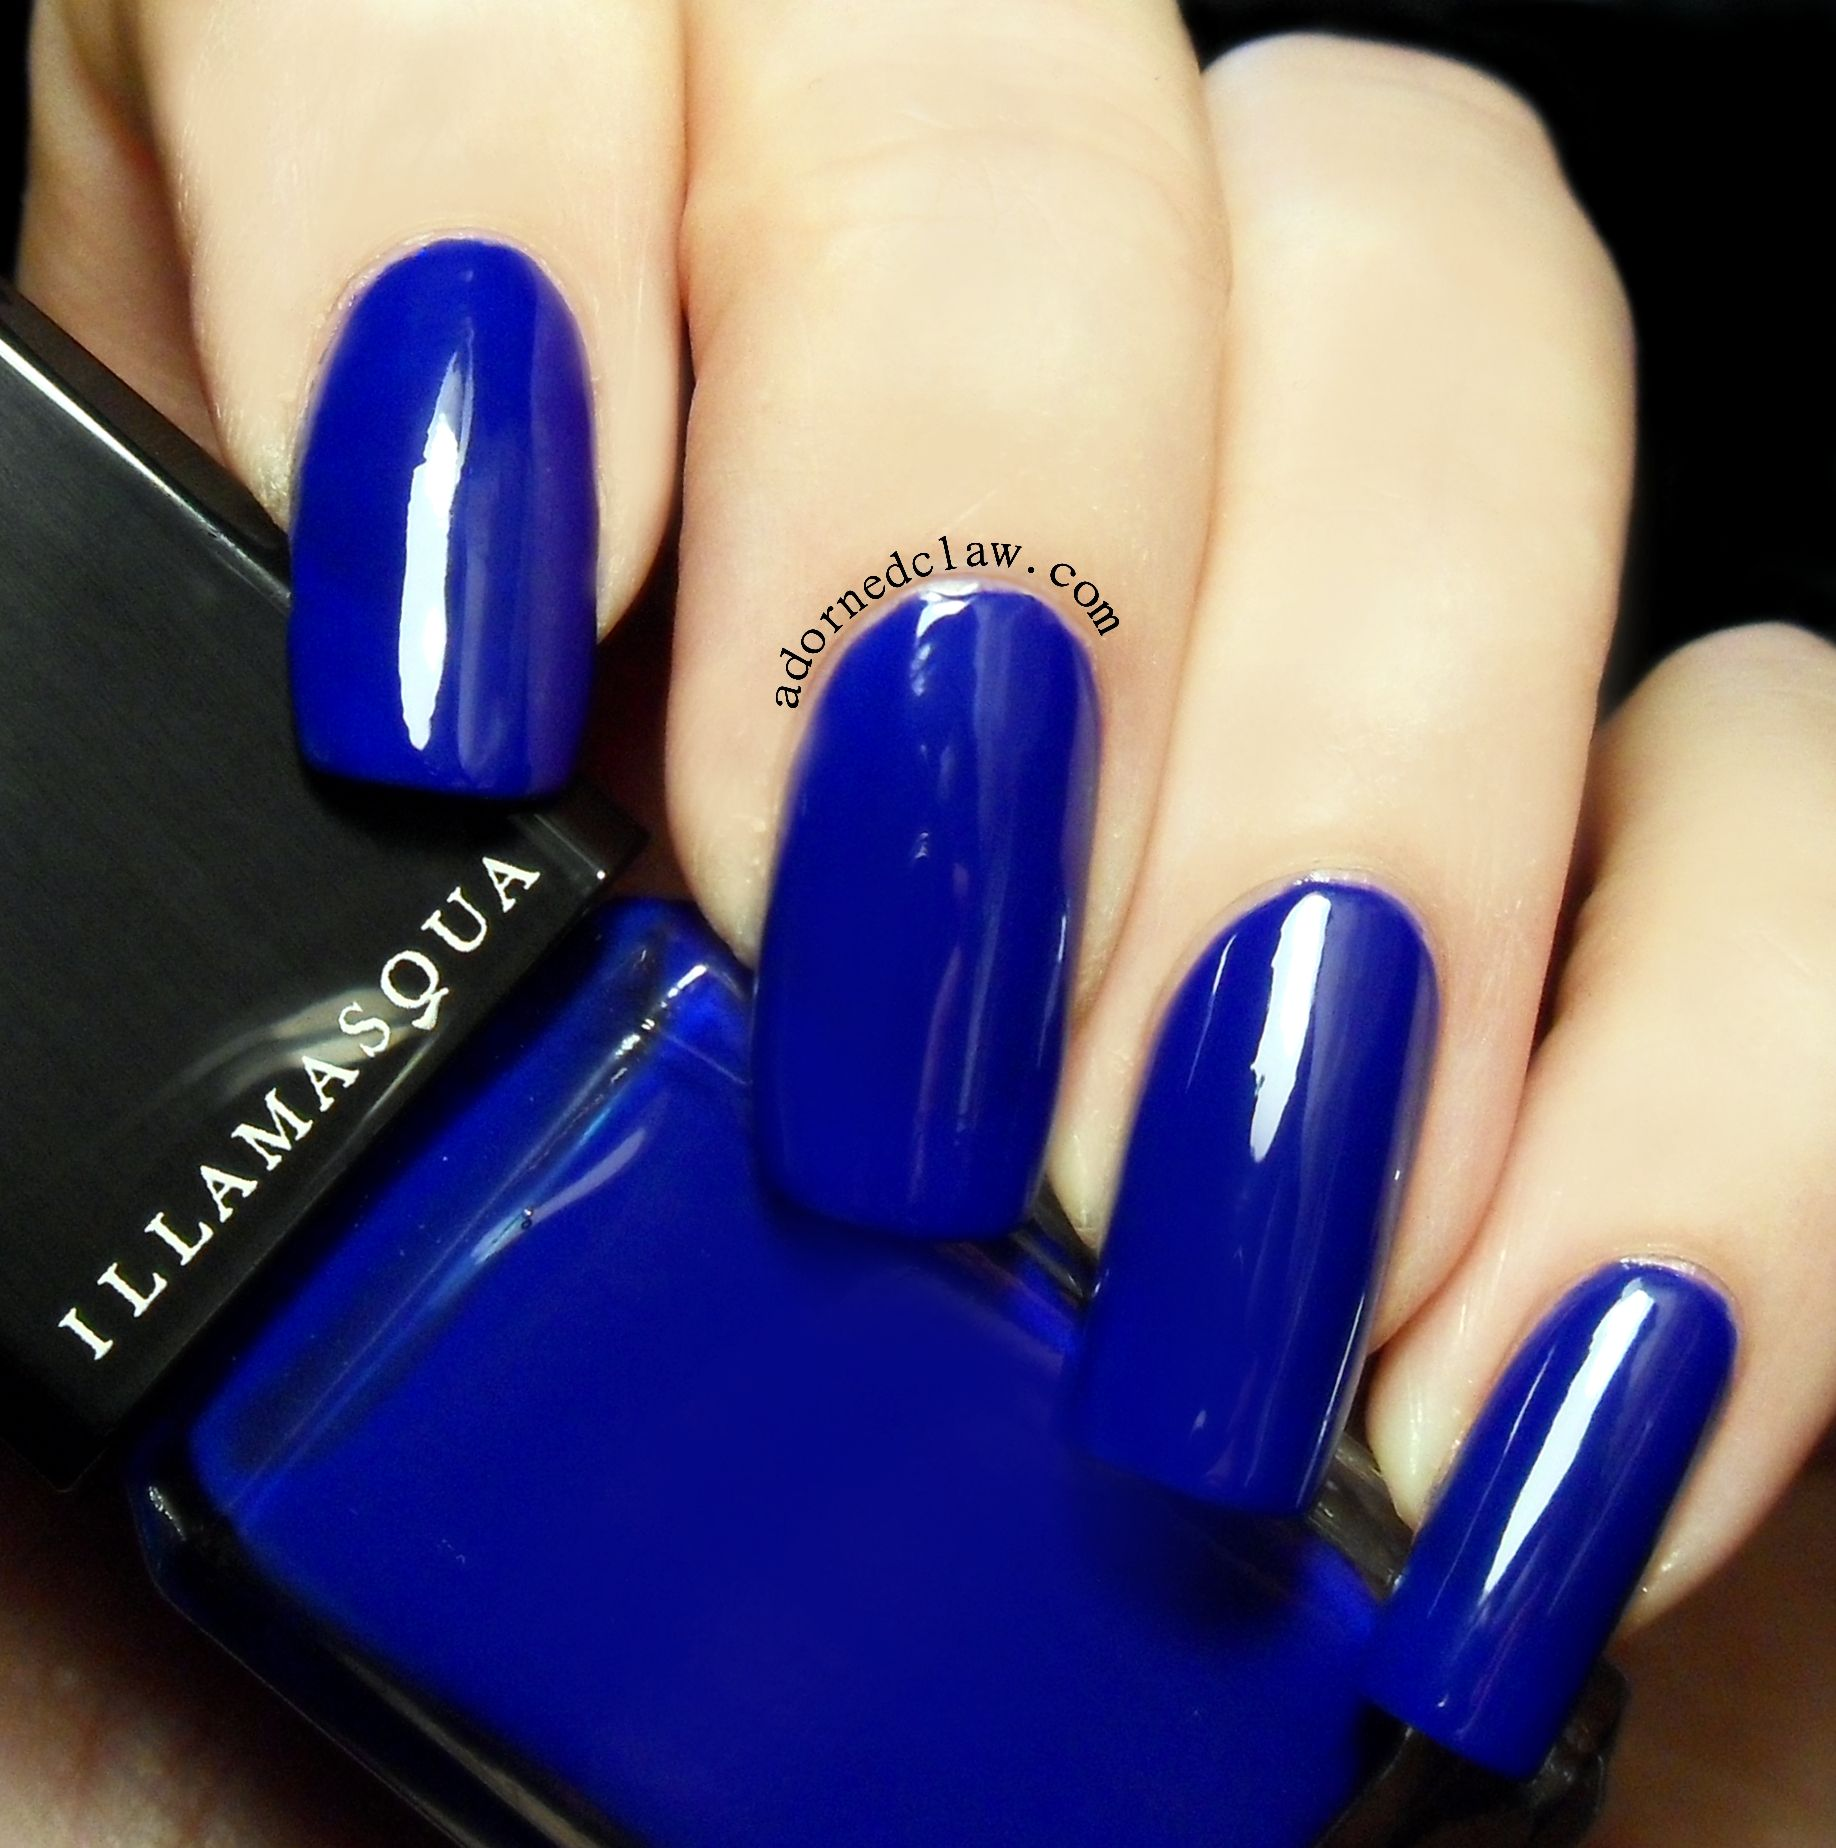 illamasqua-regal-nail-polish-varnish-swatch-royal-dark-blue-shiny ...